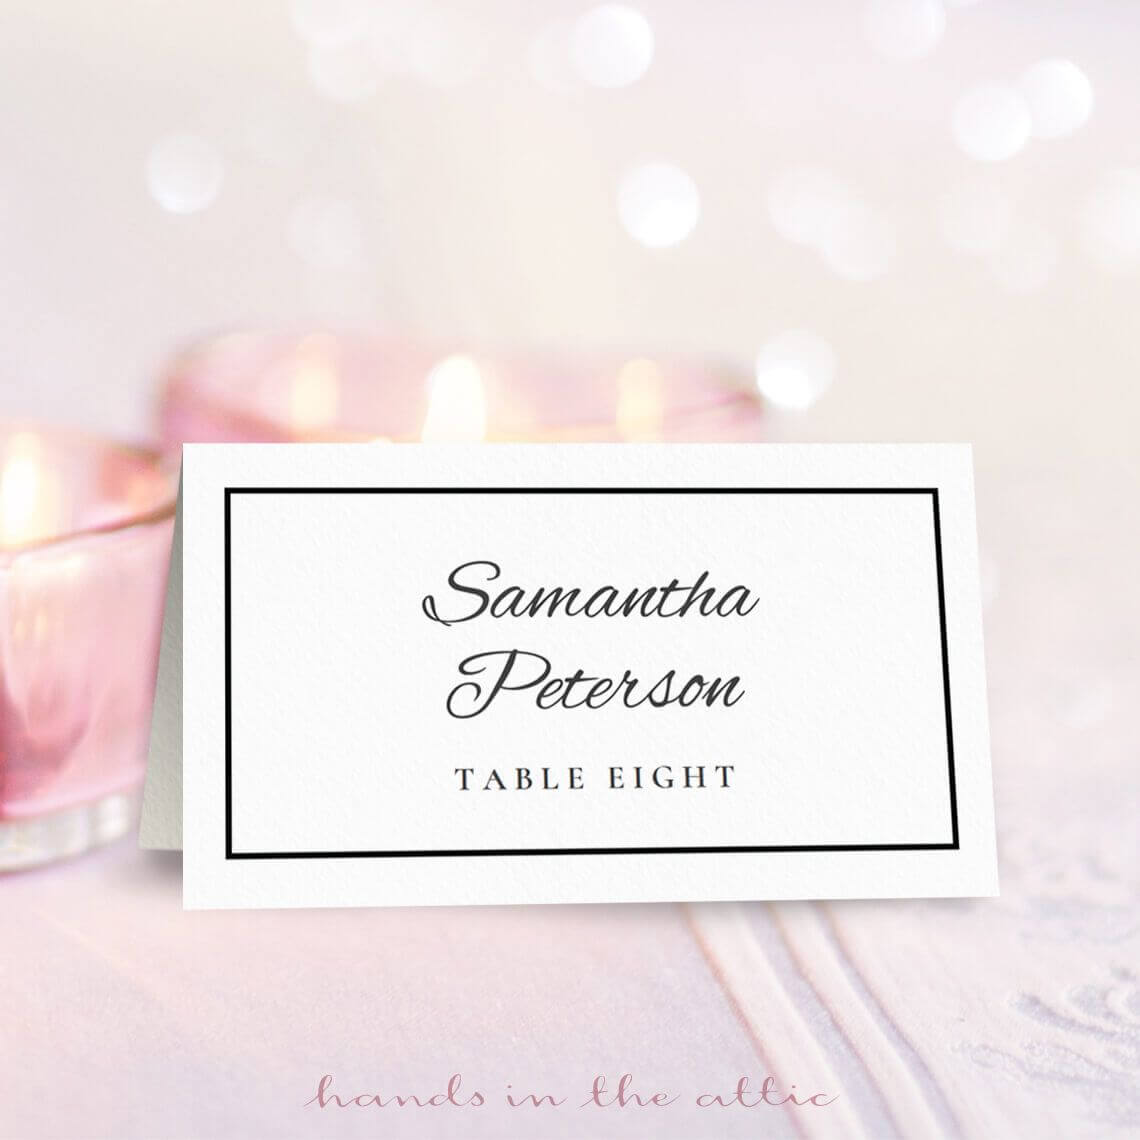 Wedding Place Card Template | Free On Handsintheattic Throughout Free Place Card Templates Download